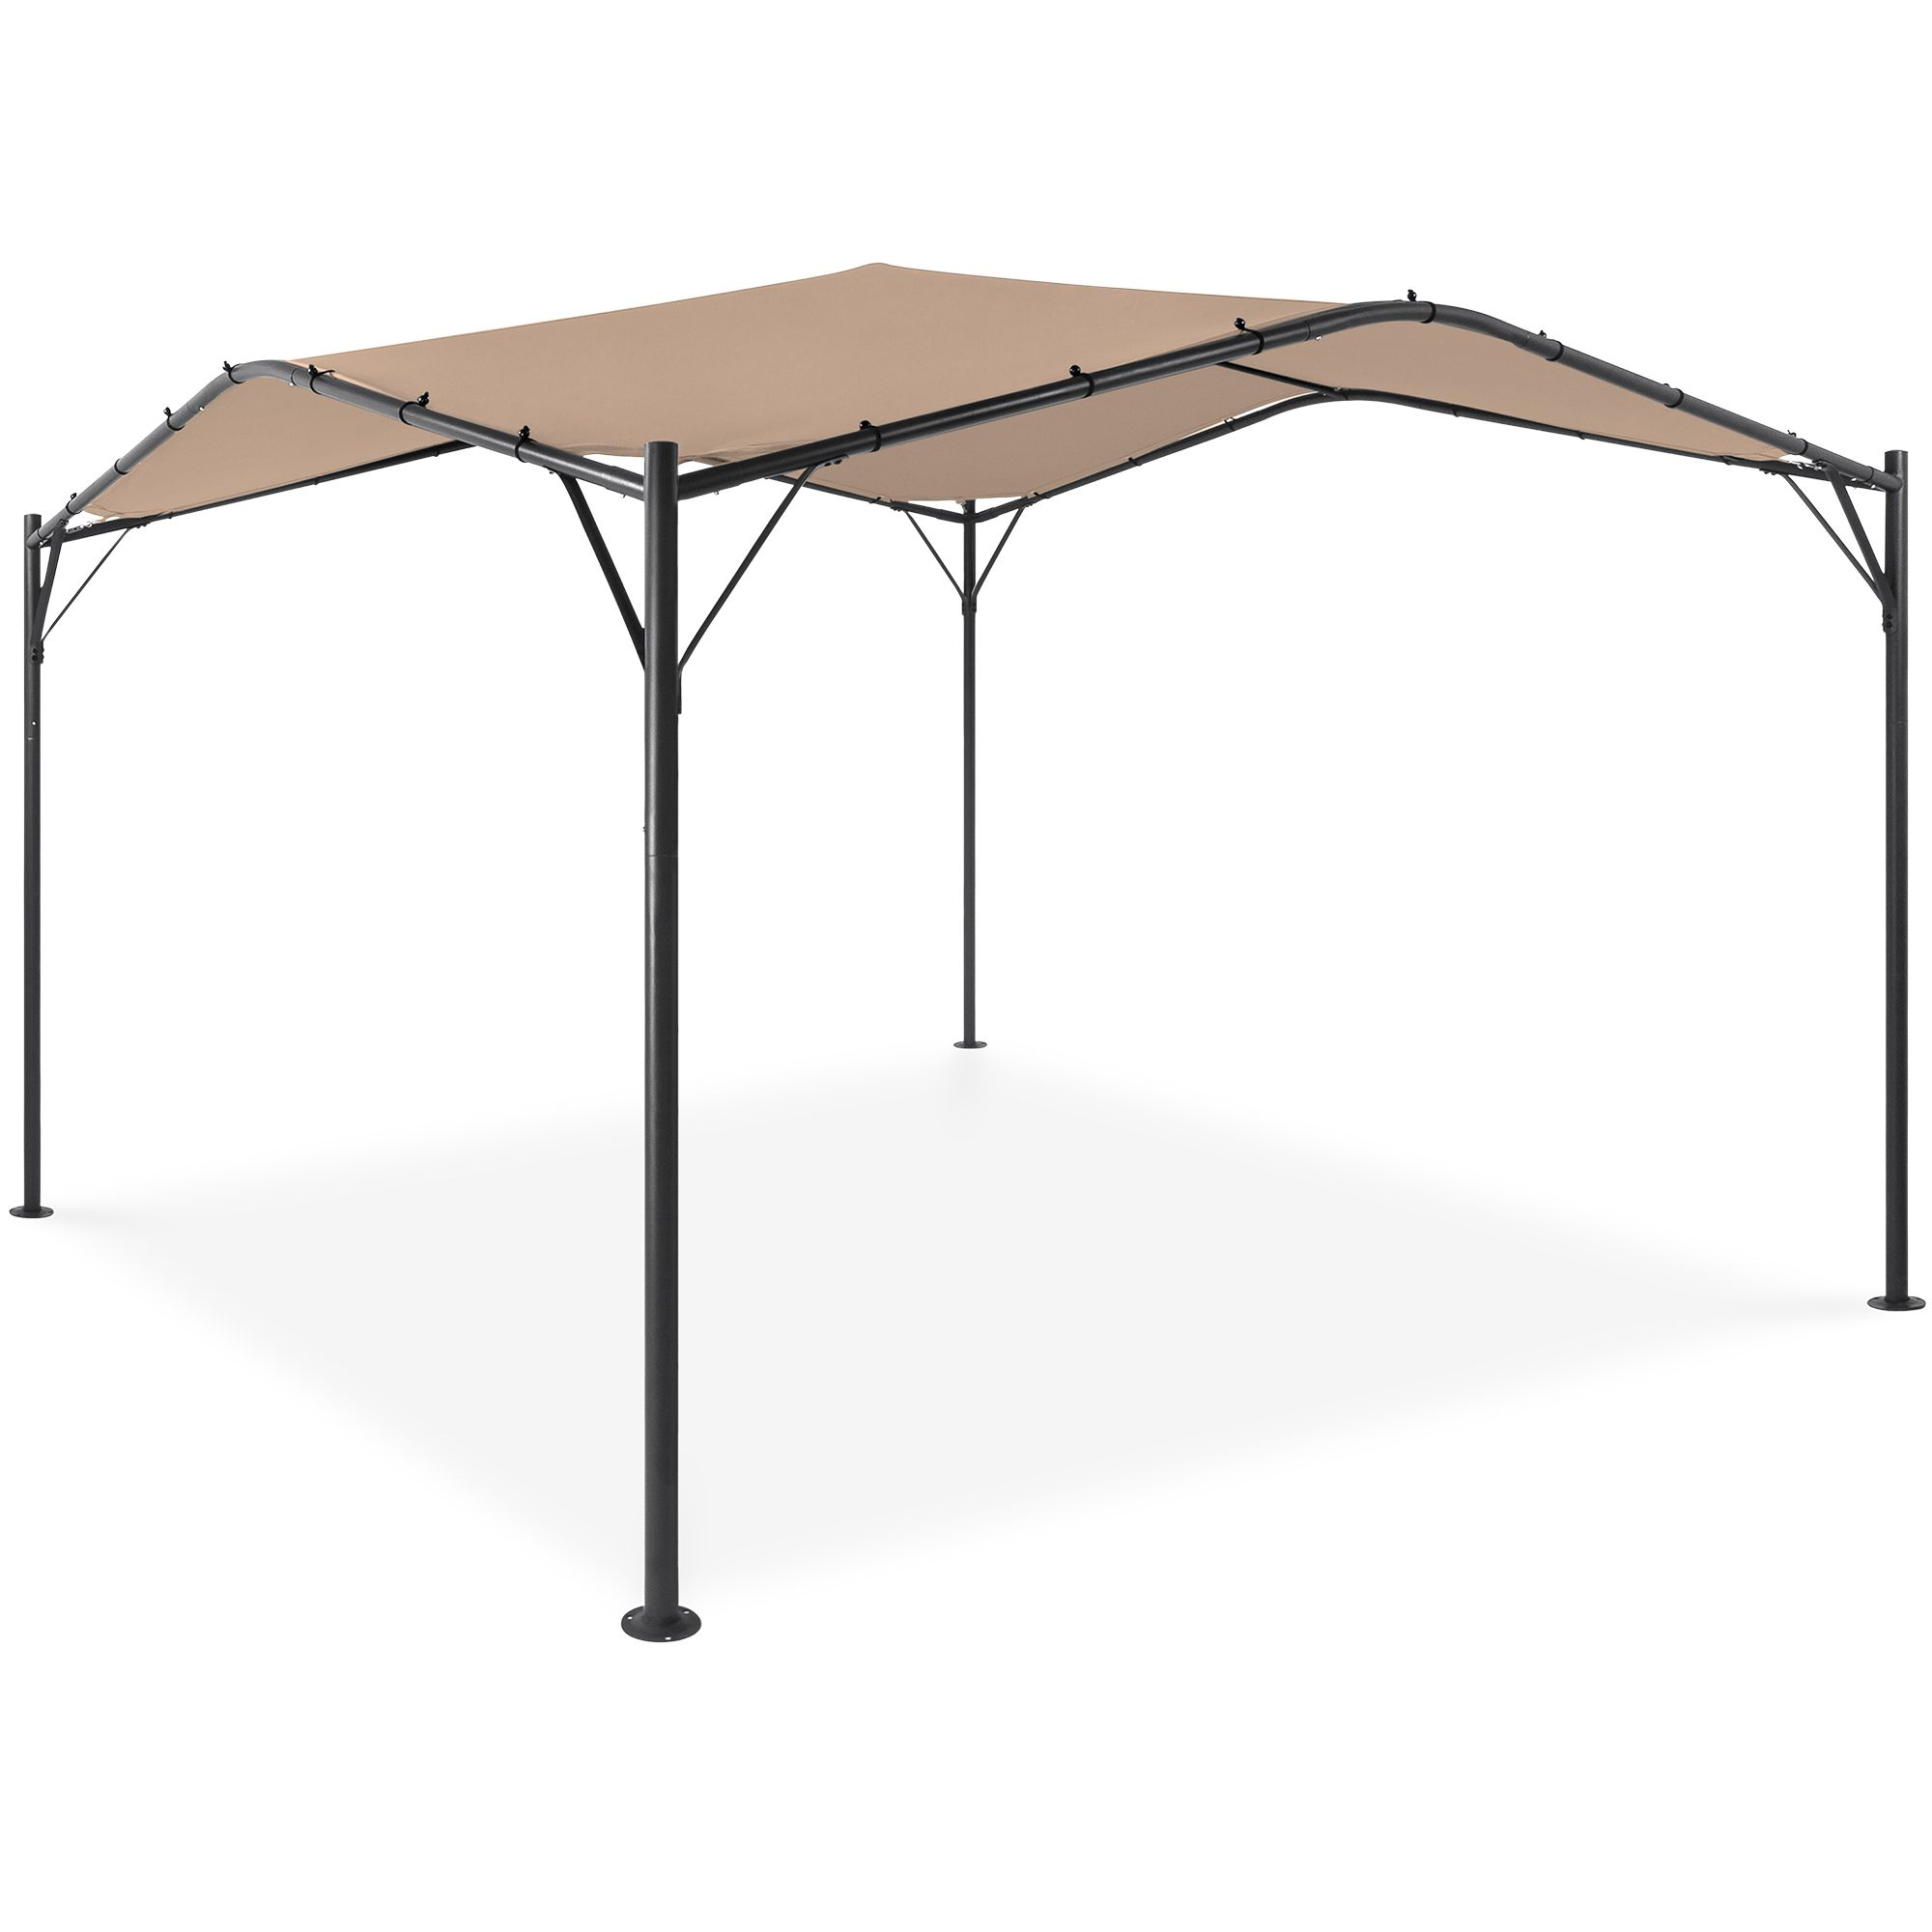 Best Choice Products 12x12ft Gazebo Canopy For Patio Backyard W Weighted Bags Weather Resistant Easy Assembly Tan Walmart In 2020 Gazebo Canopy Gazebo Backyard